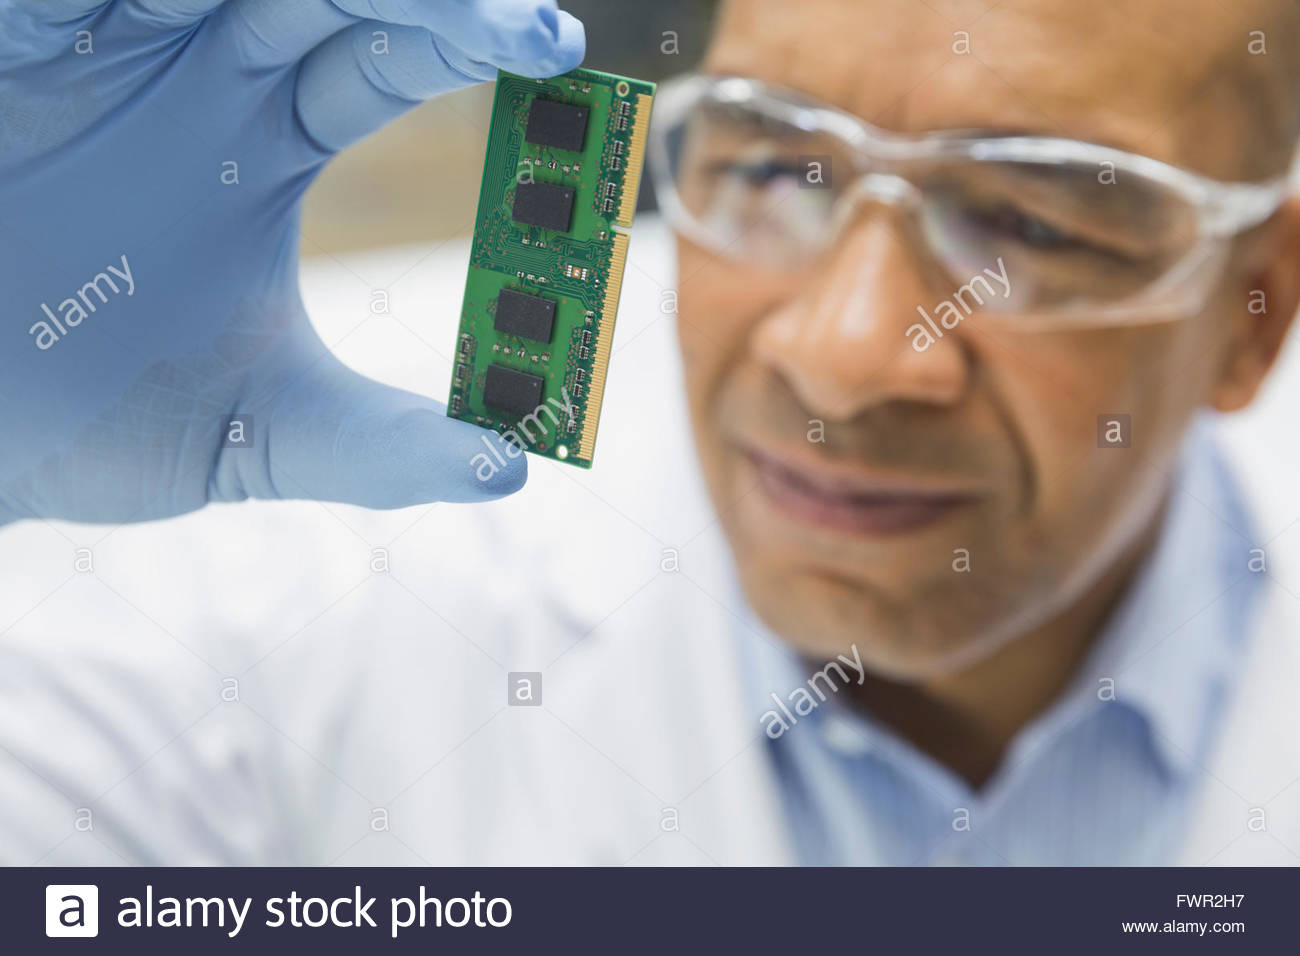 Technician examining computer chip - Stock Image